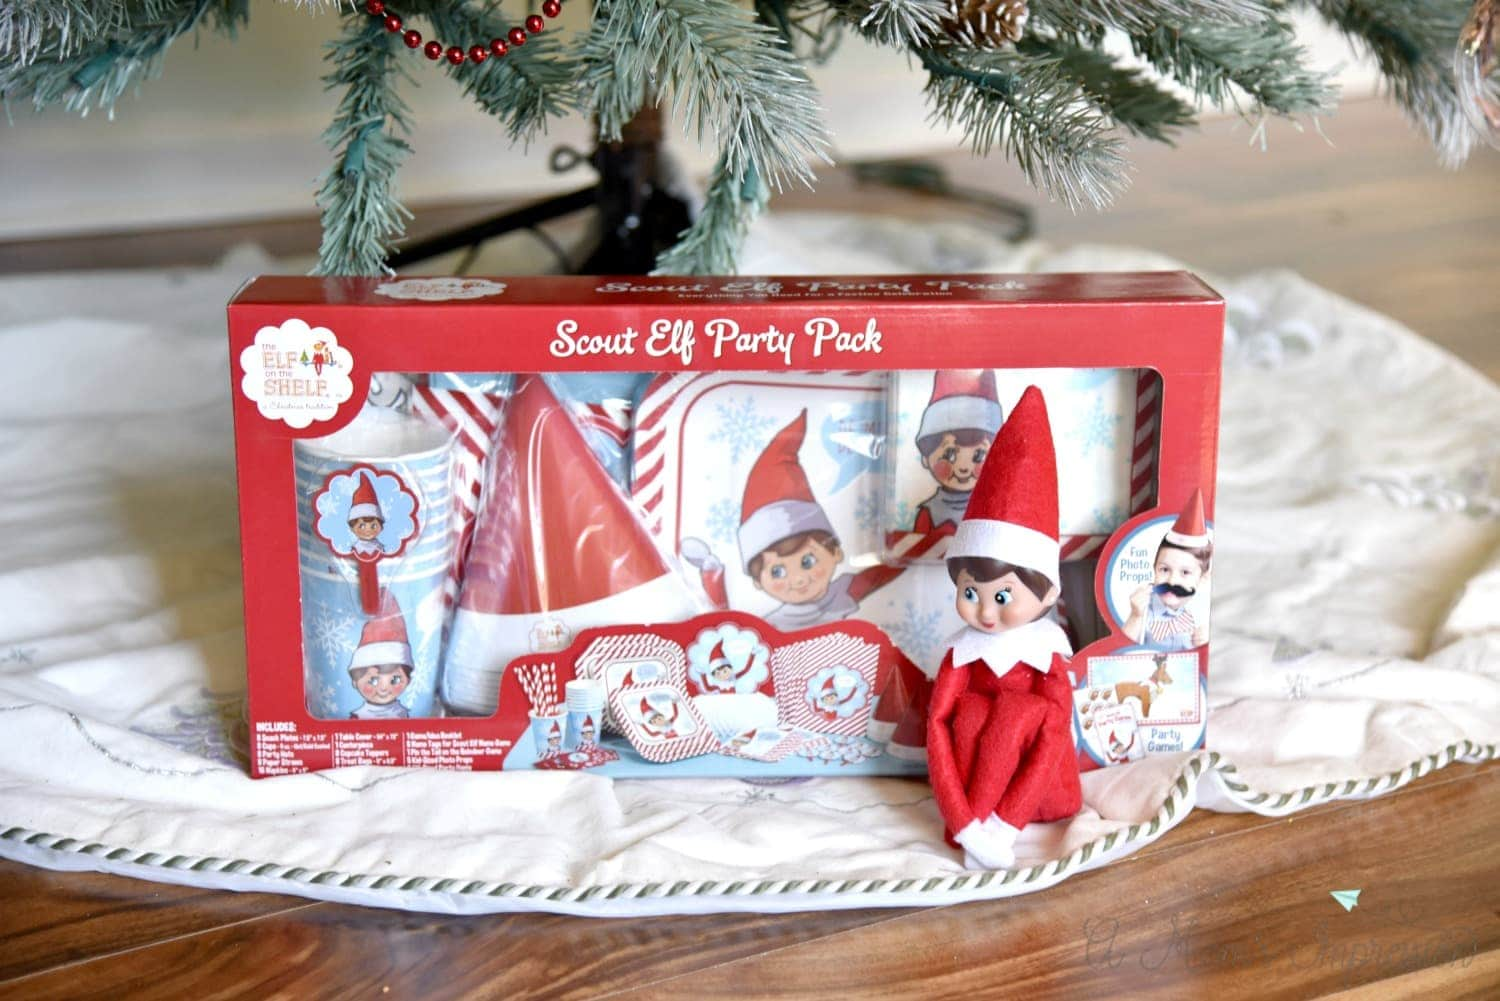 Scout Elf Party Pack